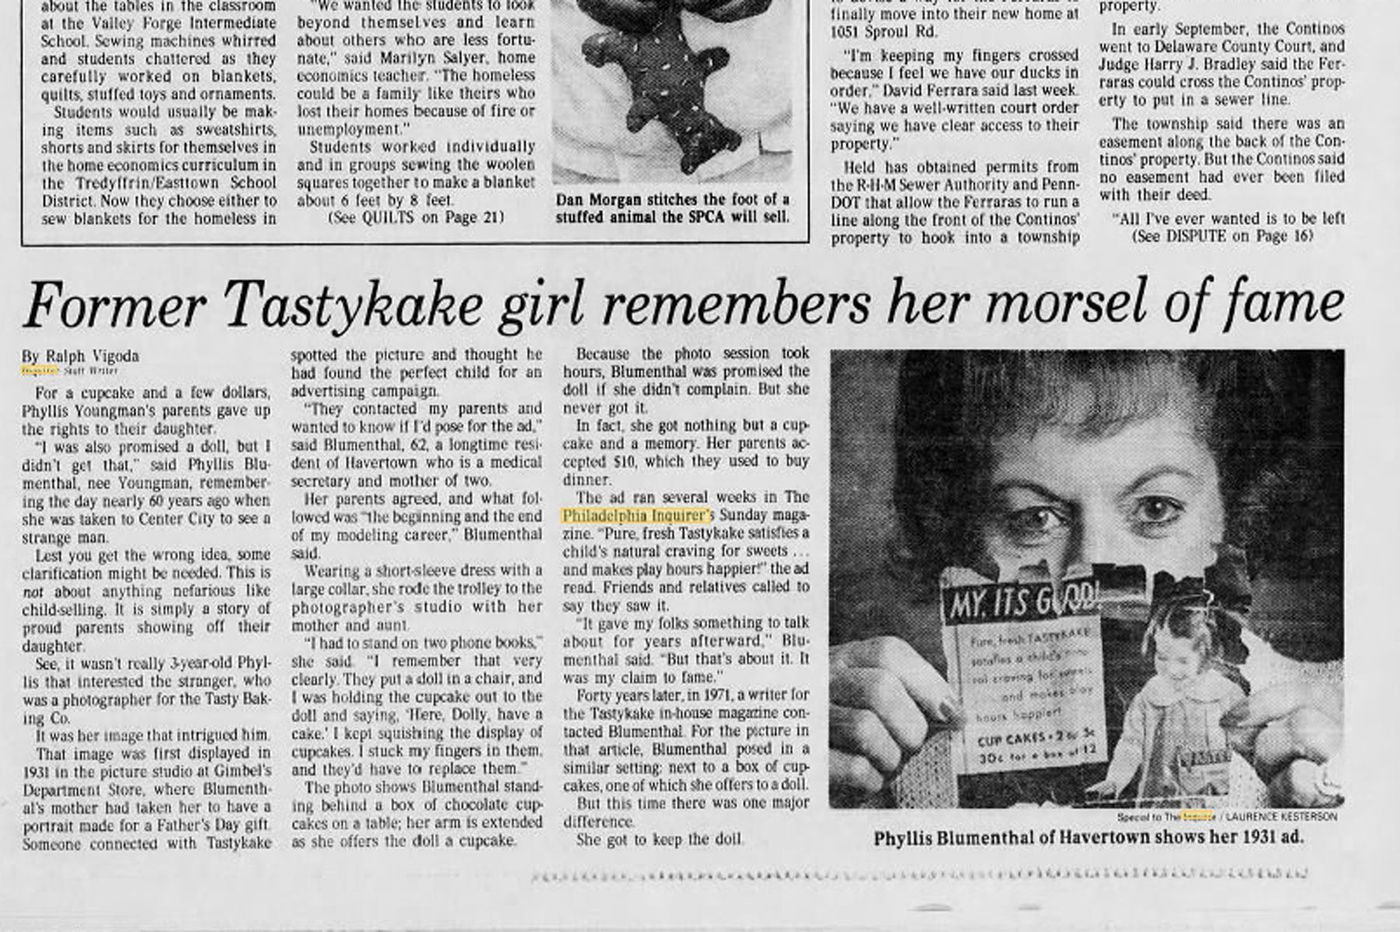 Tastykake Promised Her a Doll for Posing in an Ad.  She didn't get it.